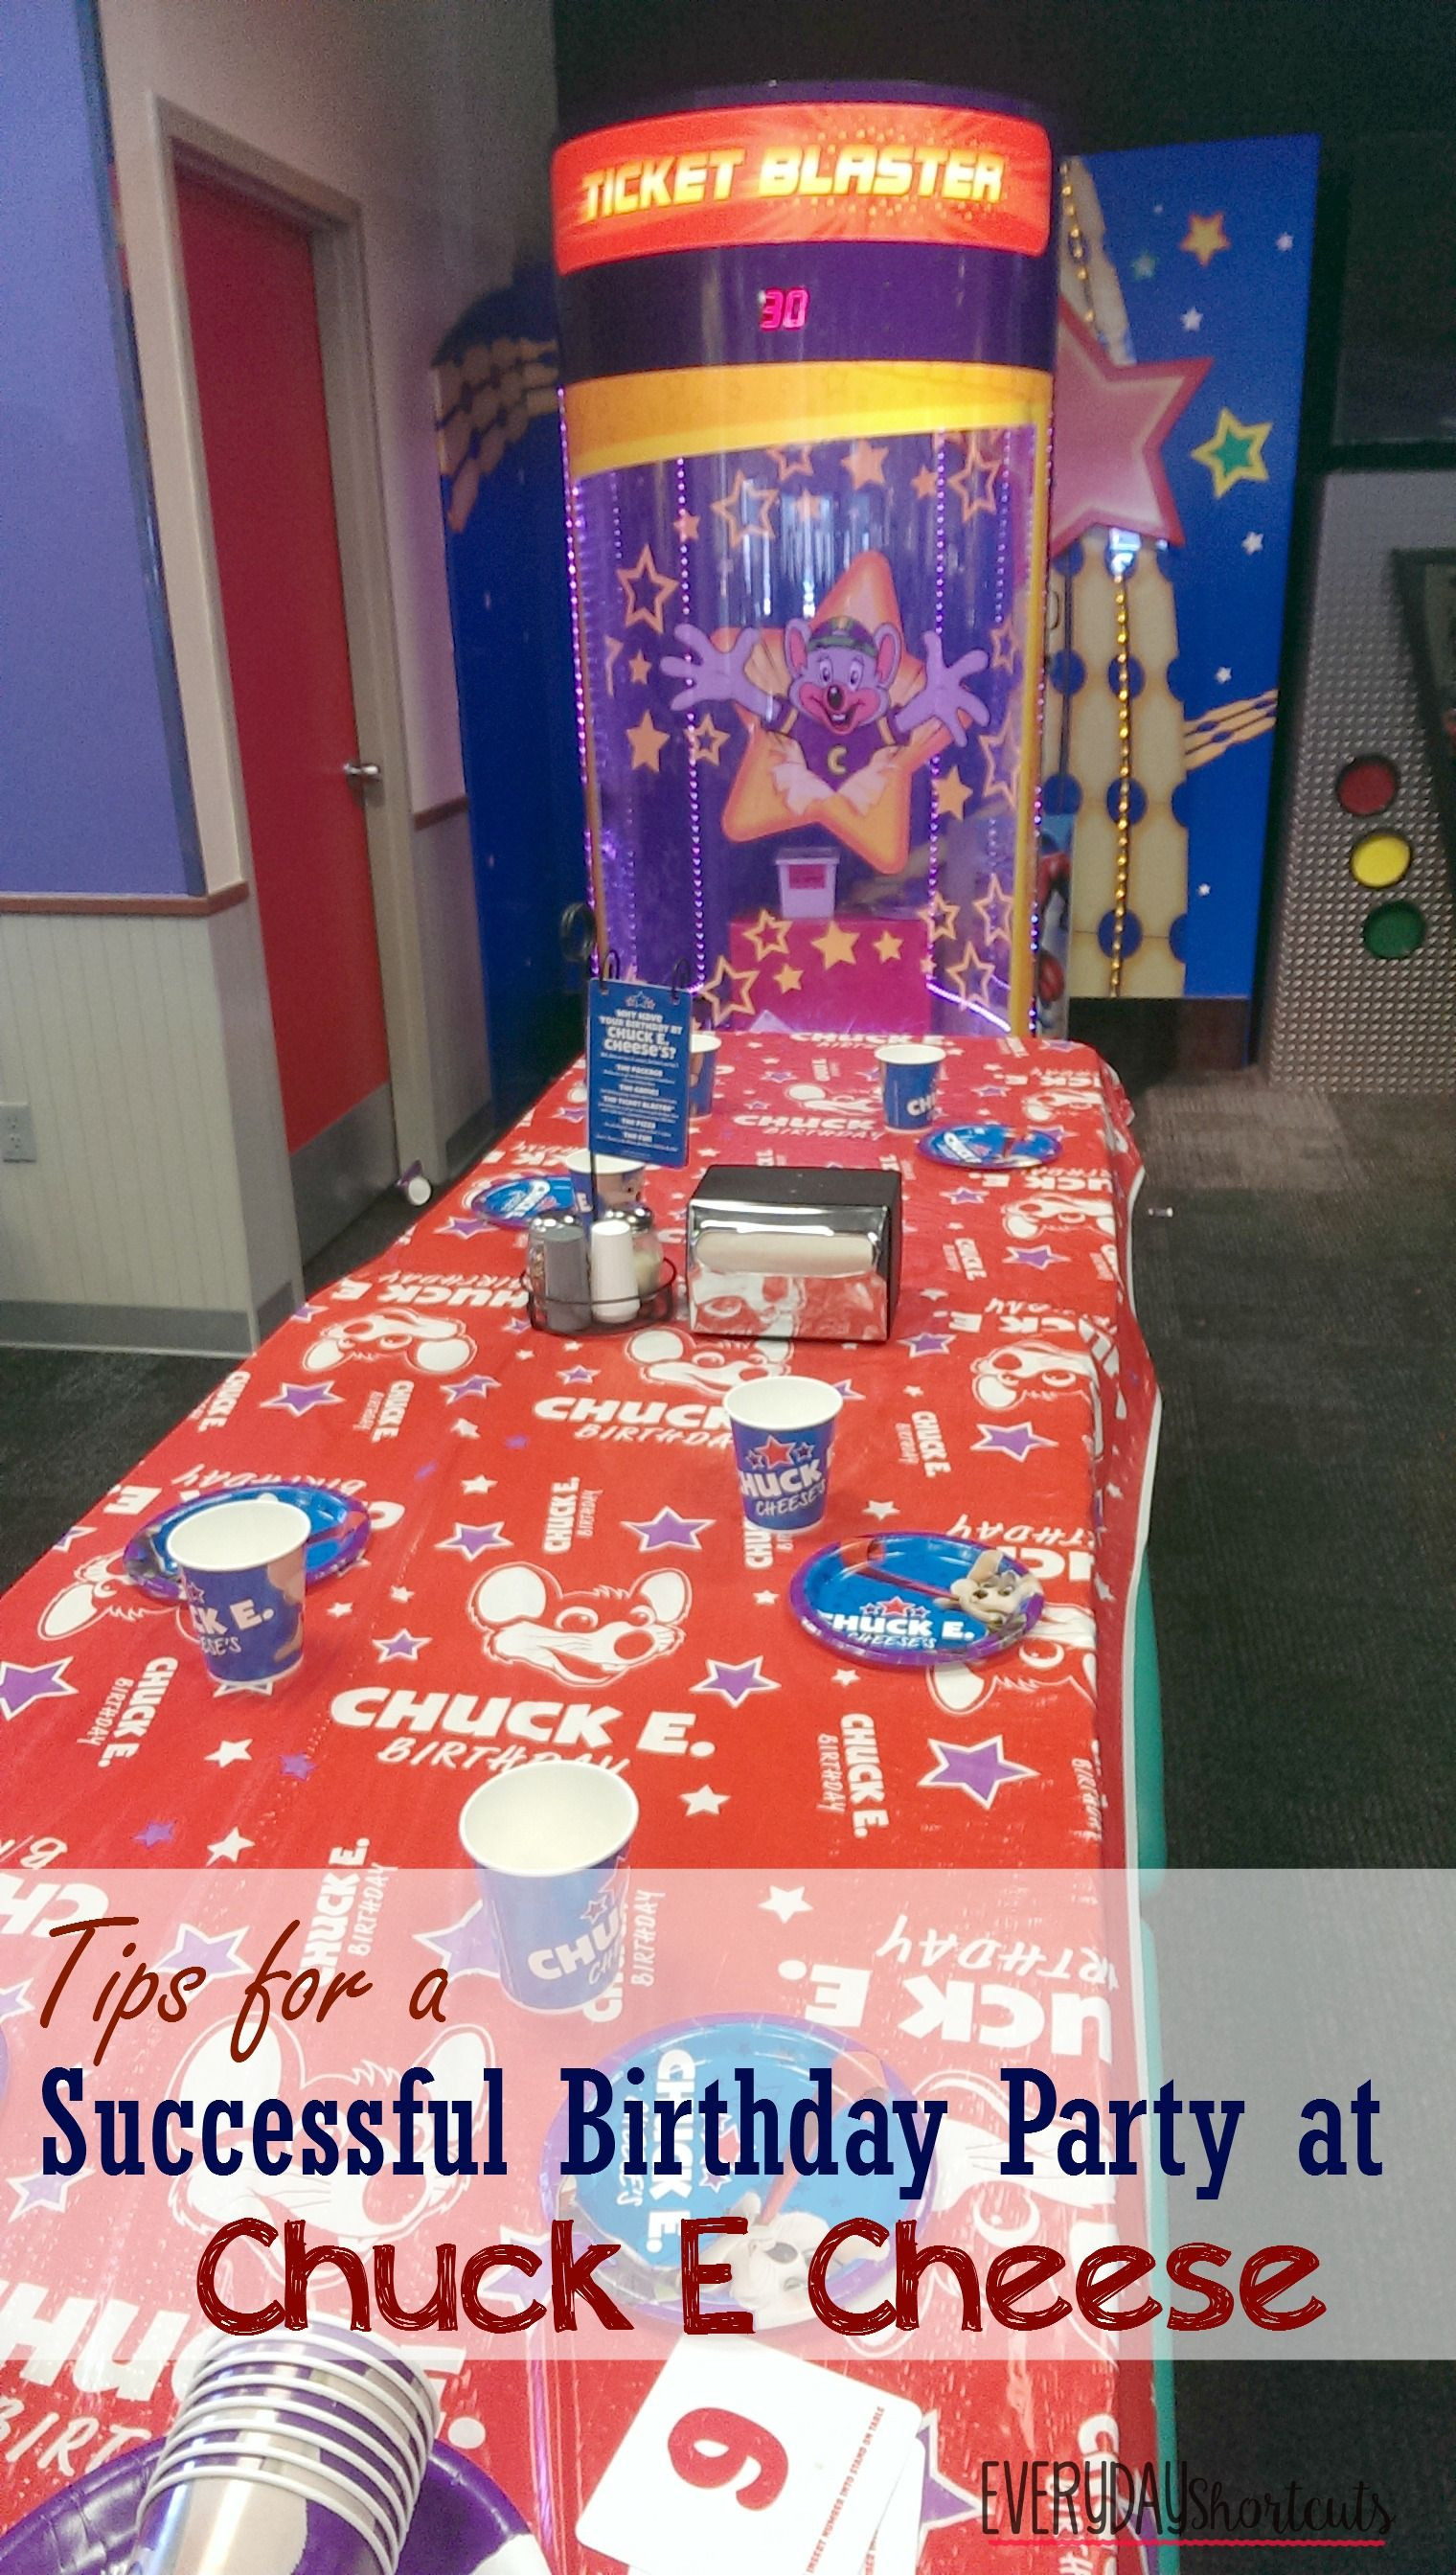 Chuck E Cheese Birthday Party Prices  Tips for a Successful Birthday Party at Chuck E Cheese